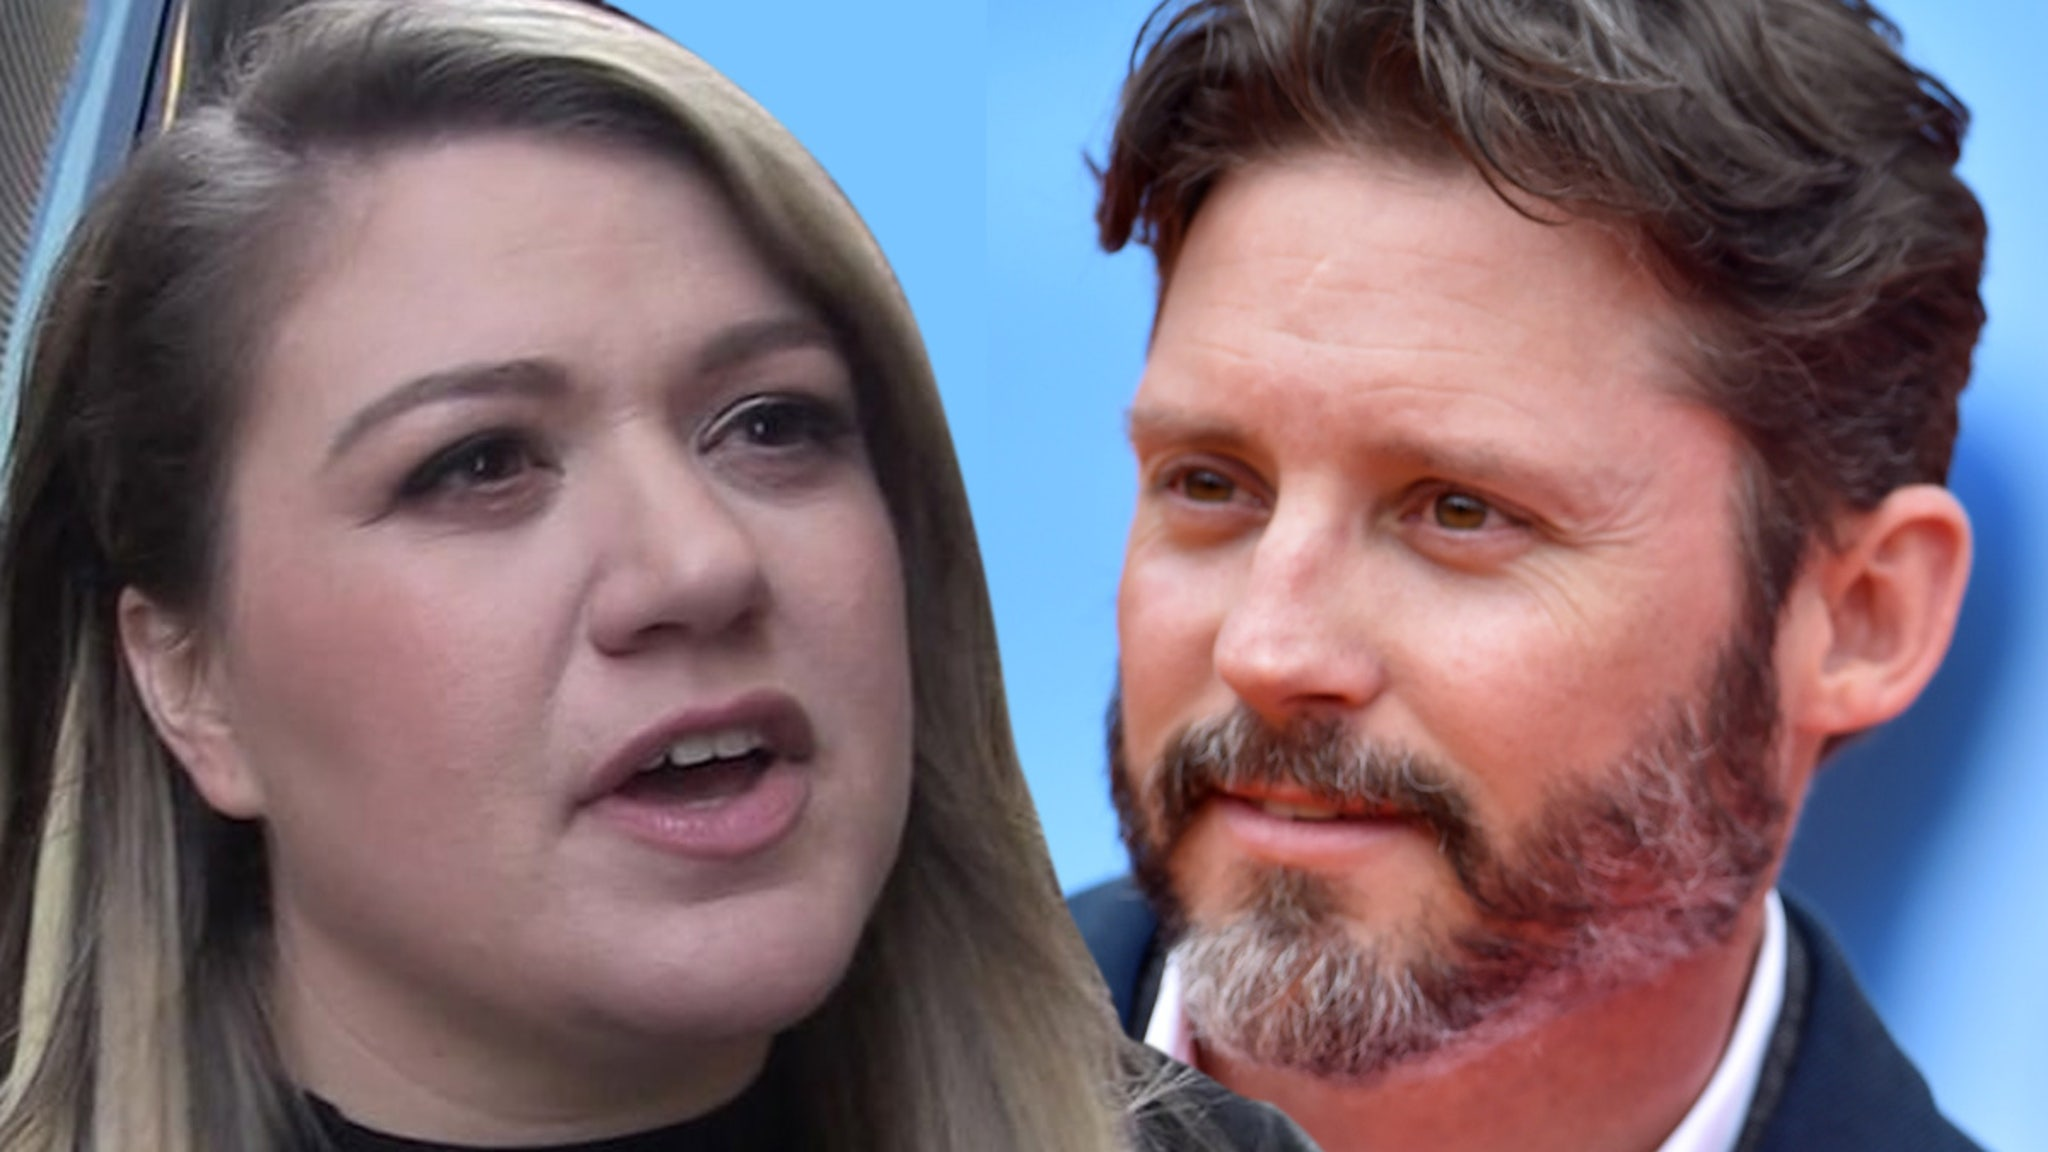 Kelly Clarkson Has to Pay Ex-Hubby $200k/Mo. in Spousal & Child Support